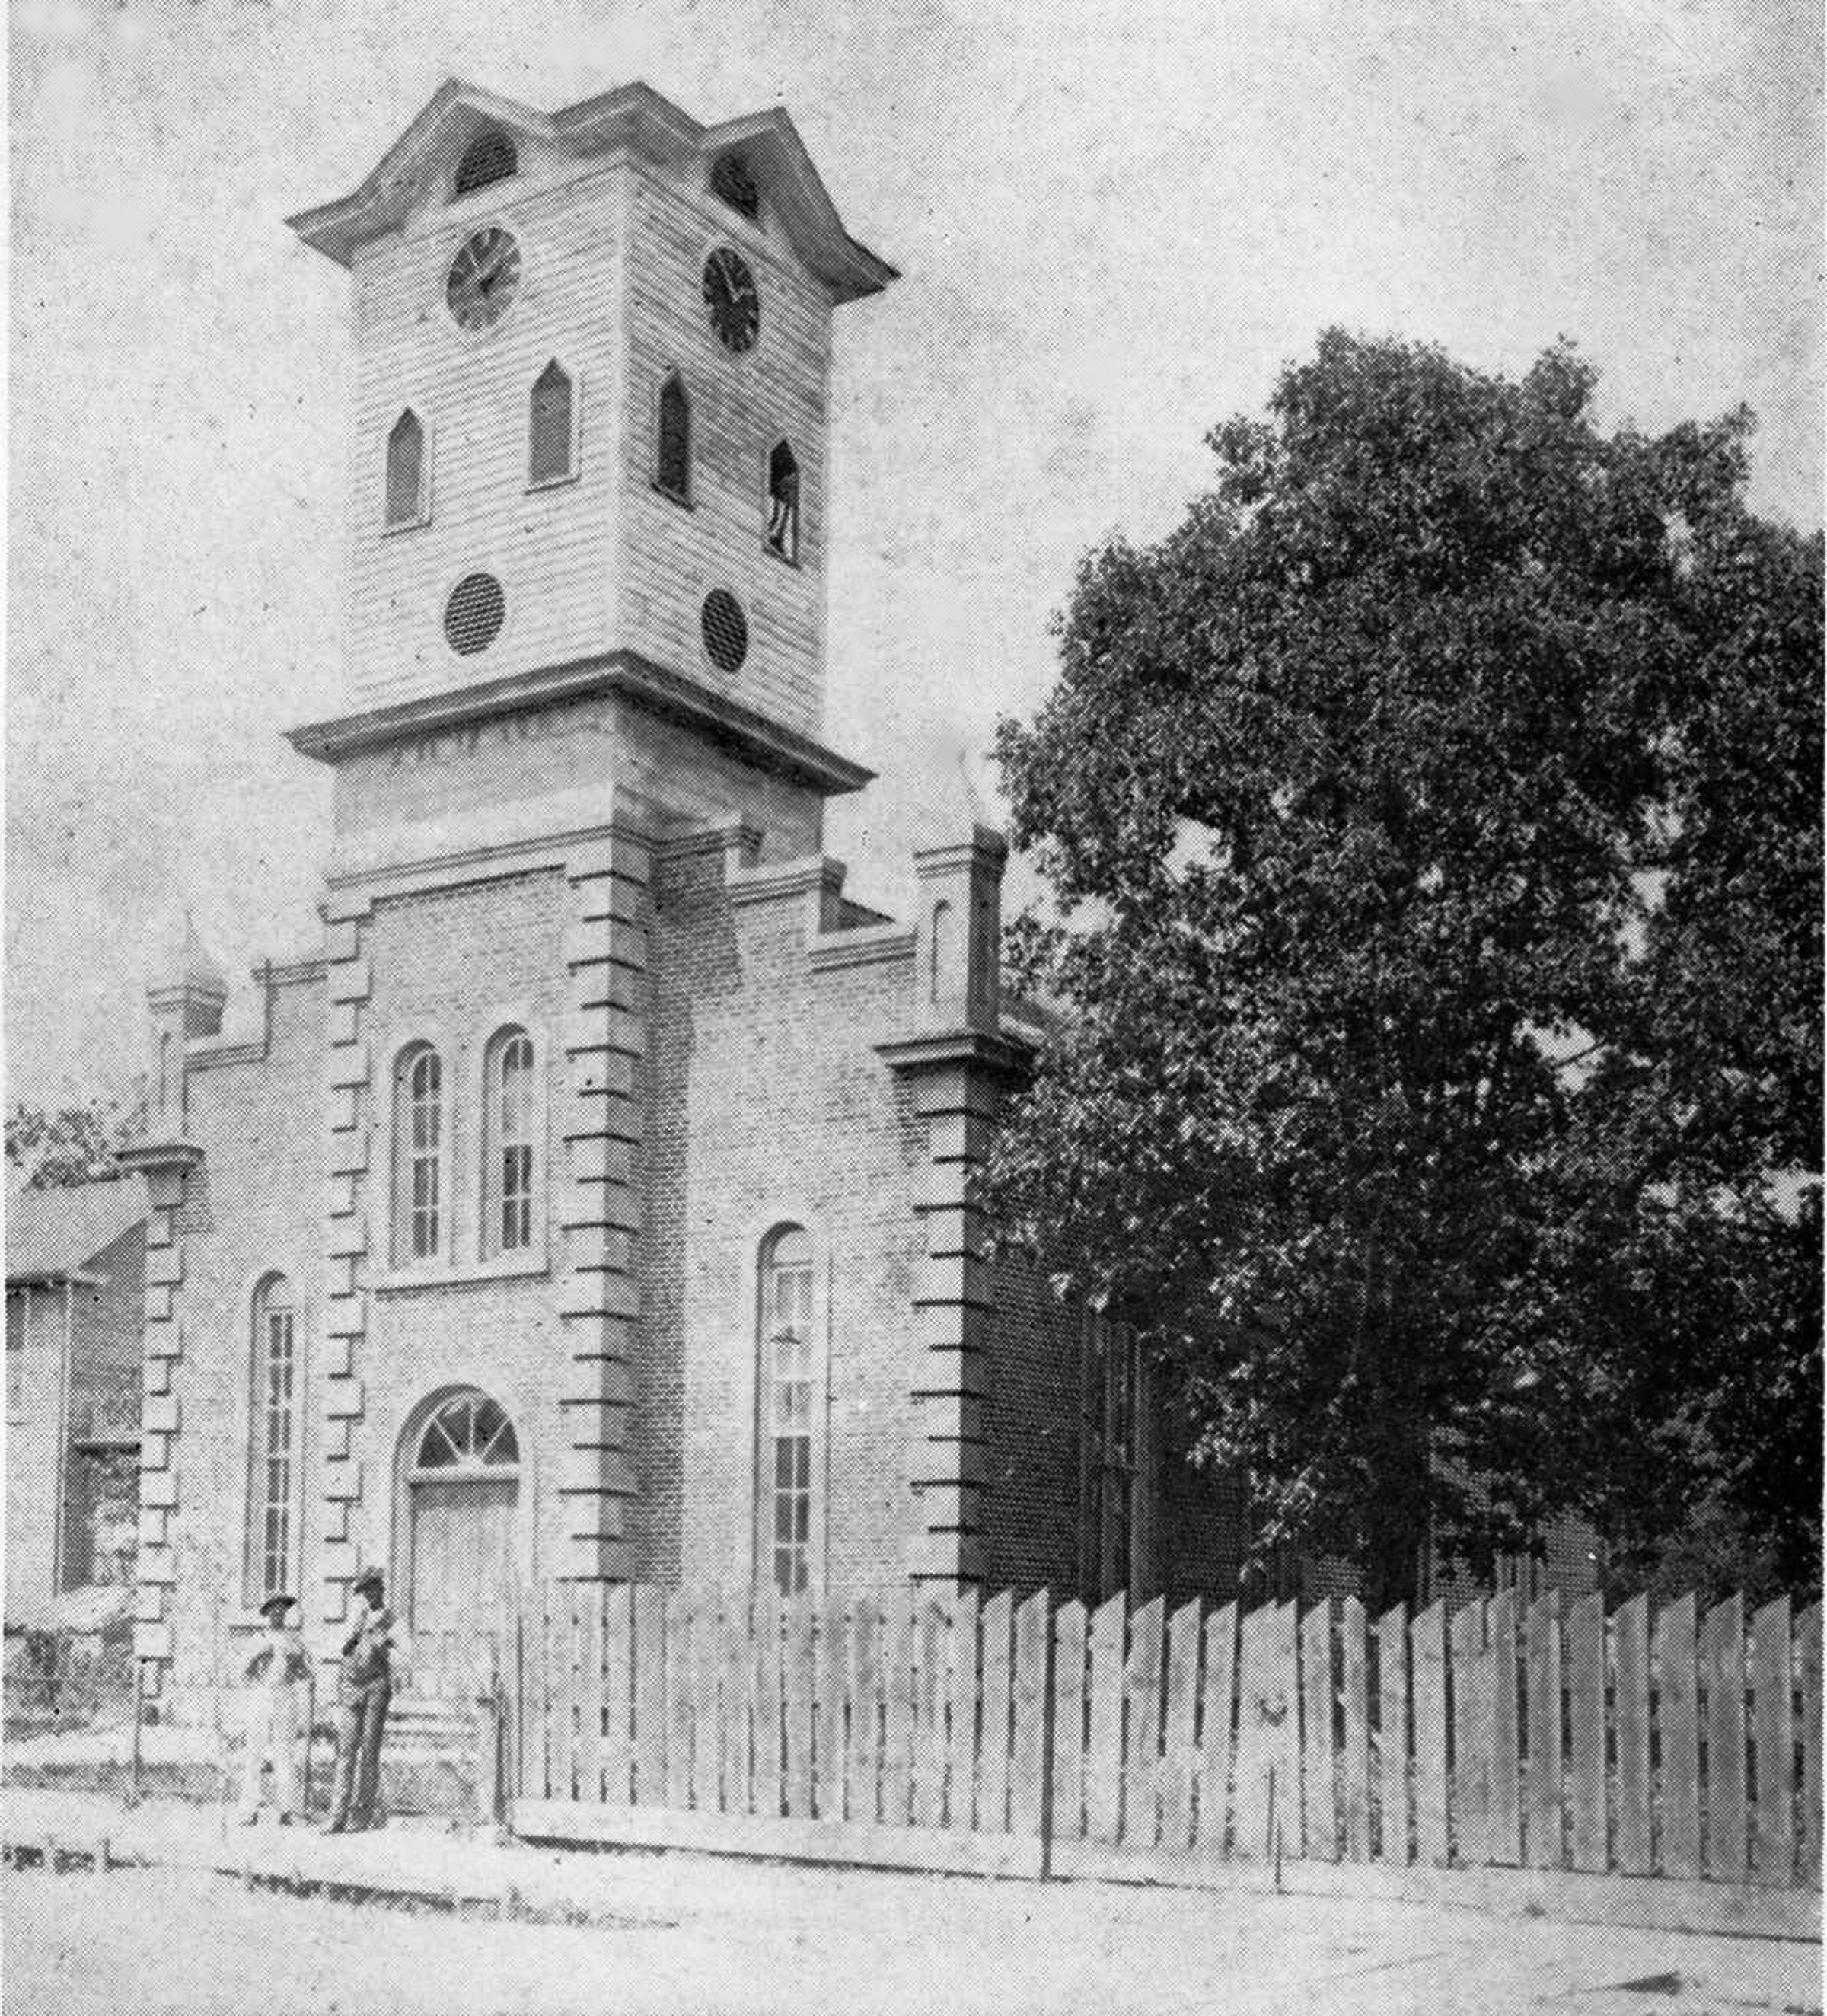 The 2nd Methodist church, once stood on Main Street, also housed the Rock Hill City clock in its tower.